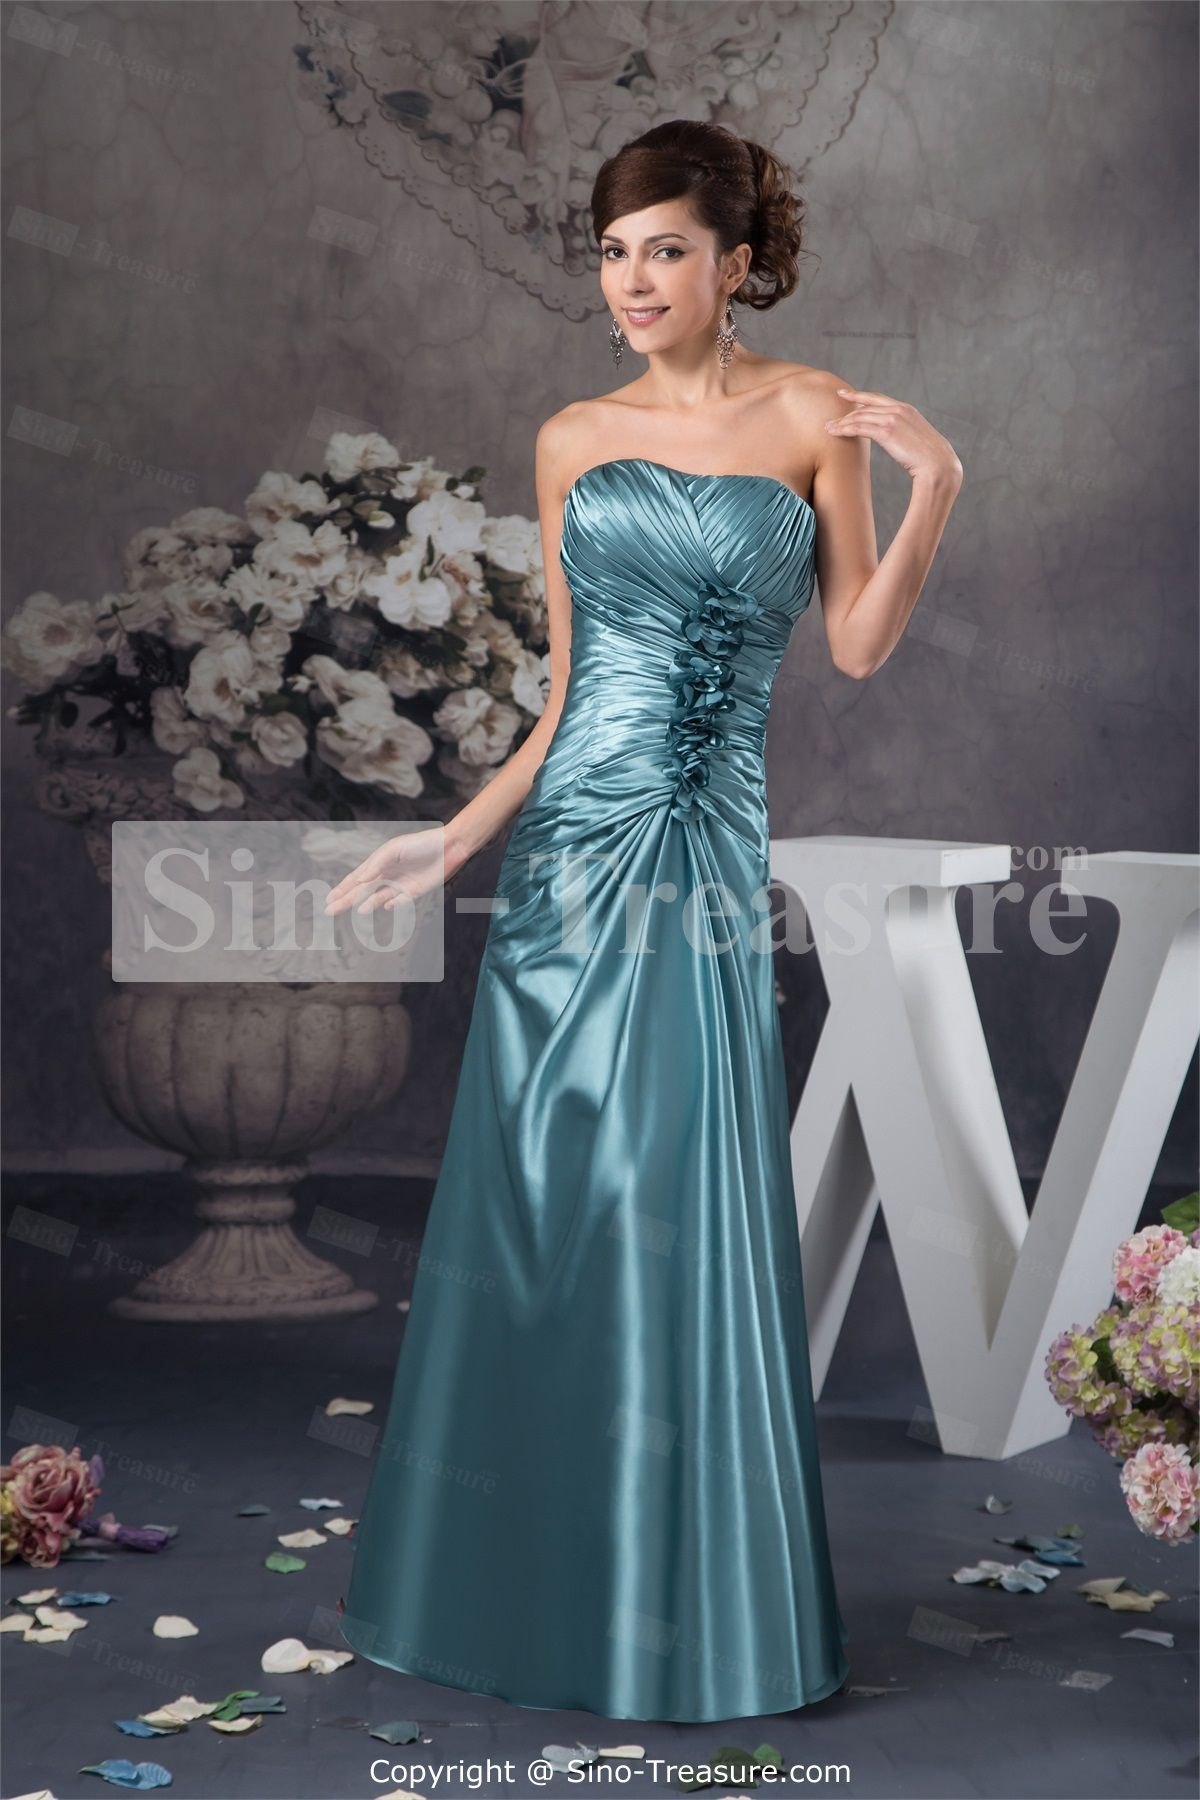 Dark blue wedding dress  Dark Blue Summer FloorLength Silklike Satin Evening Dress Wedding